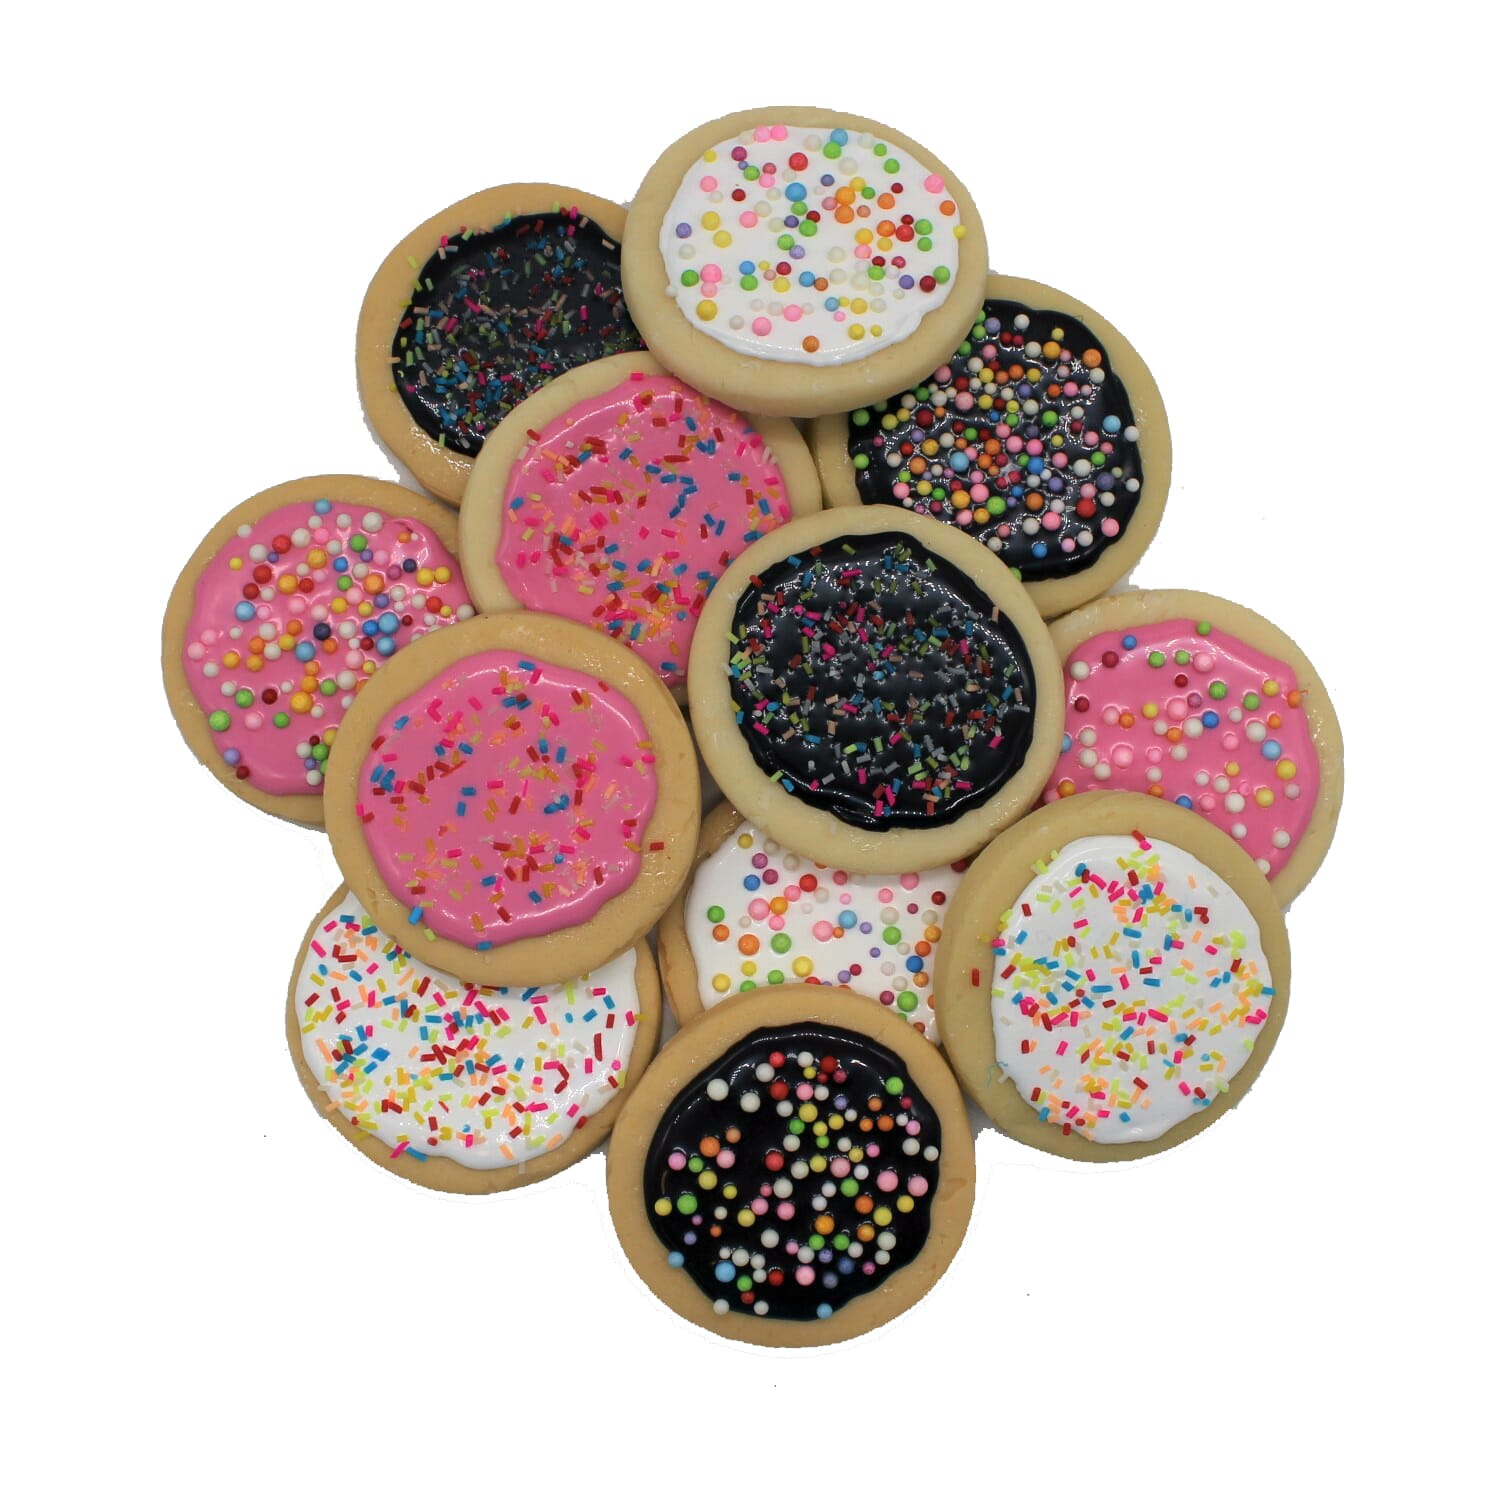 Fake Assorted Frosted Sugar Cookies (1 dozen)